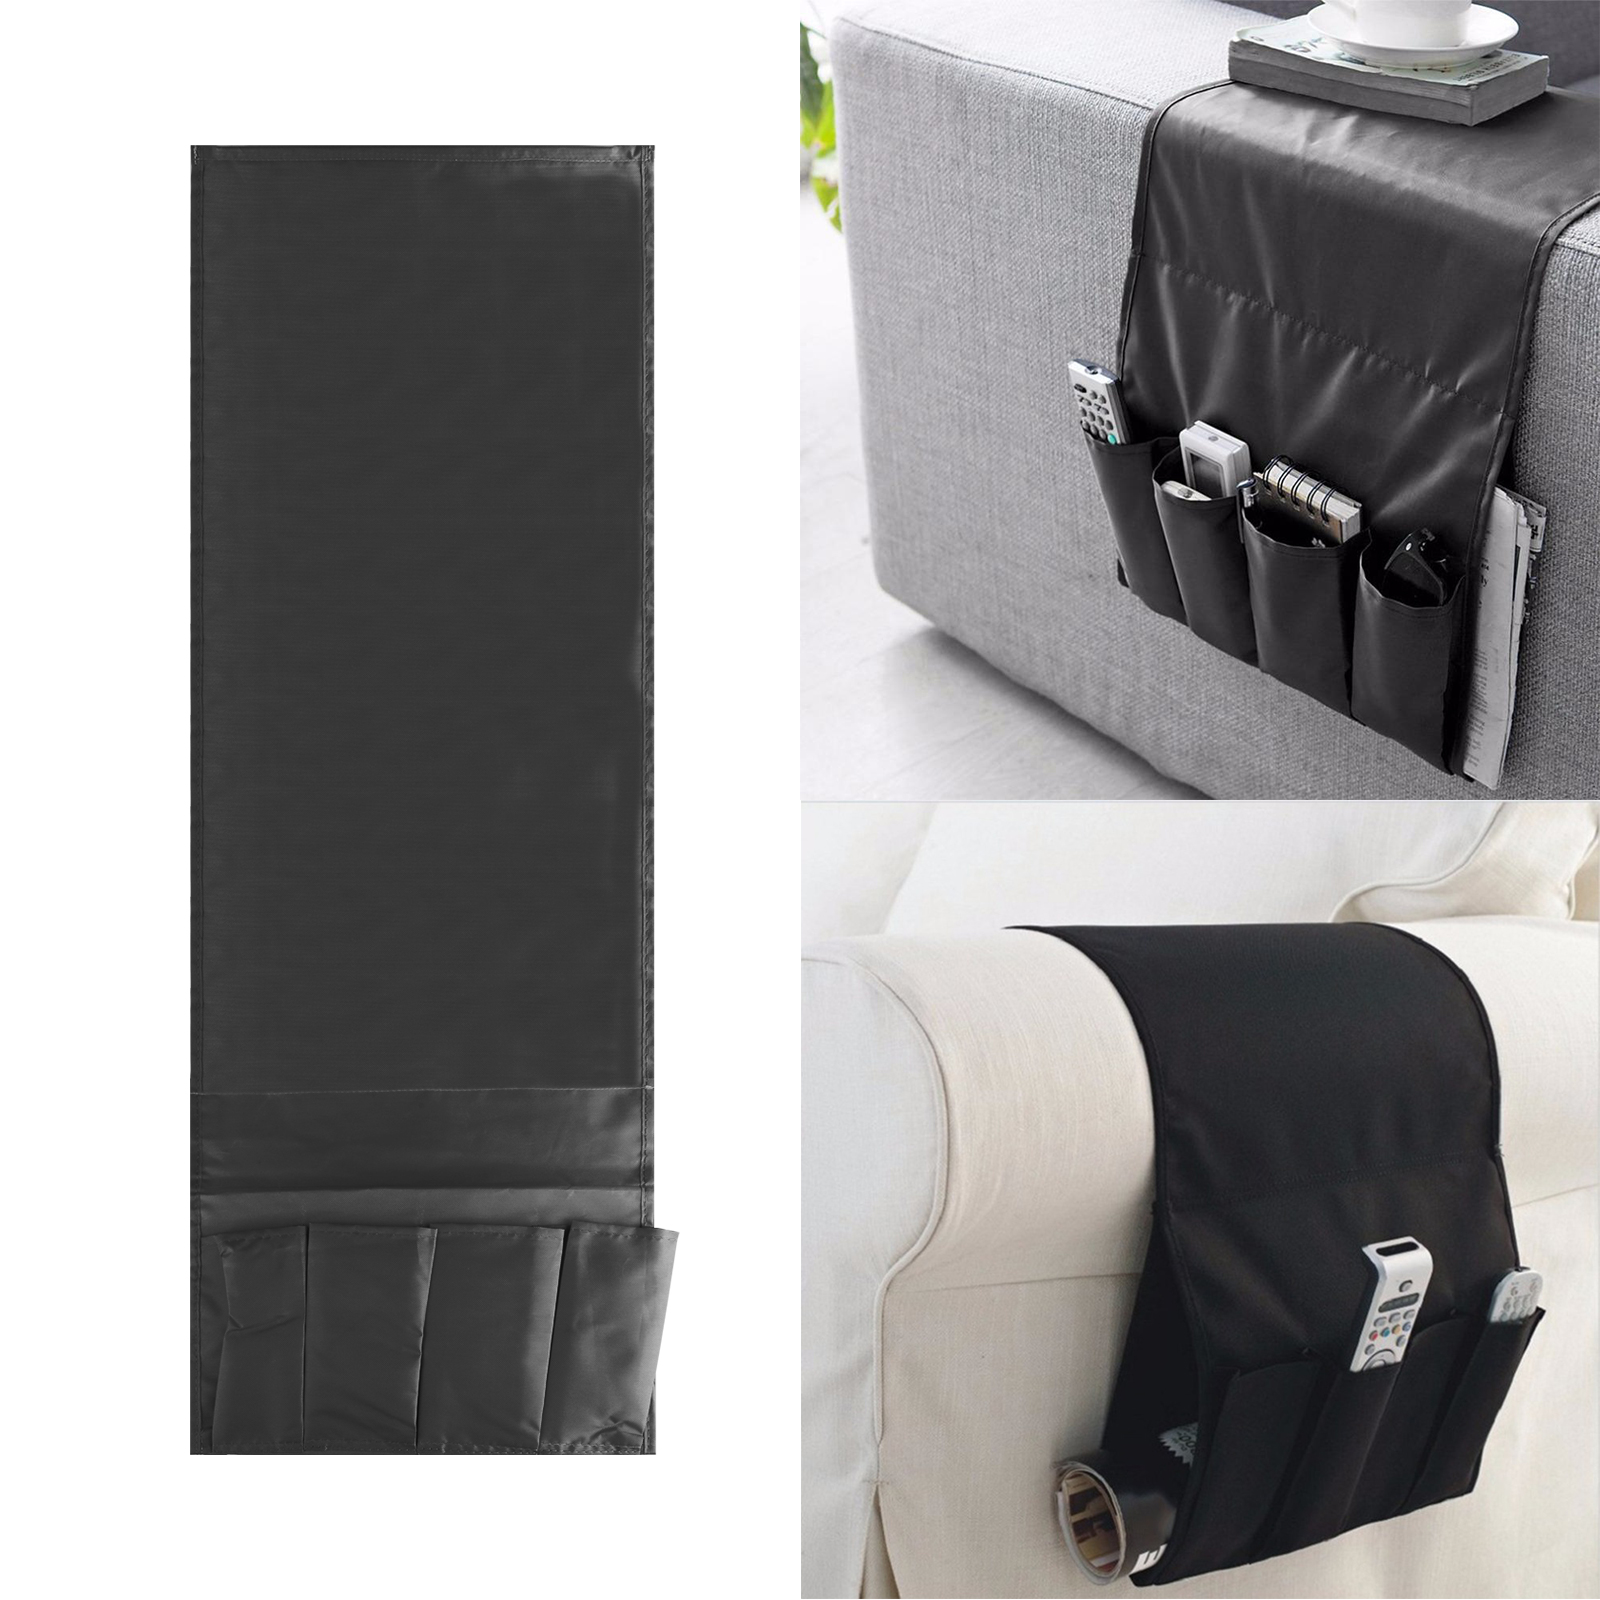 Sofa Couch TV Remote Control Holder Armrest Organizer Storage Bag Pouch 4 Pocket